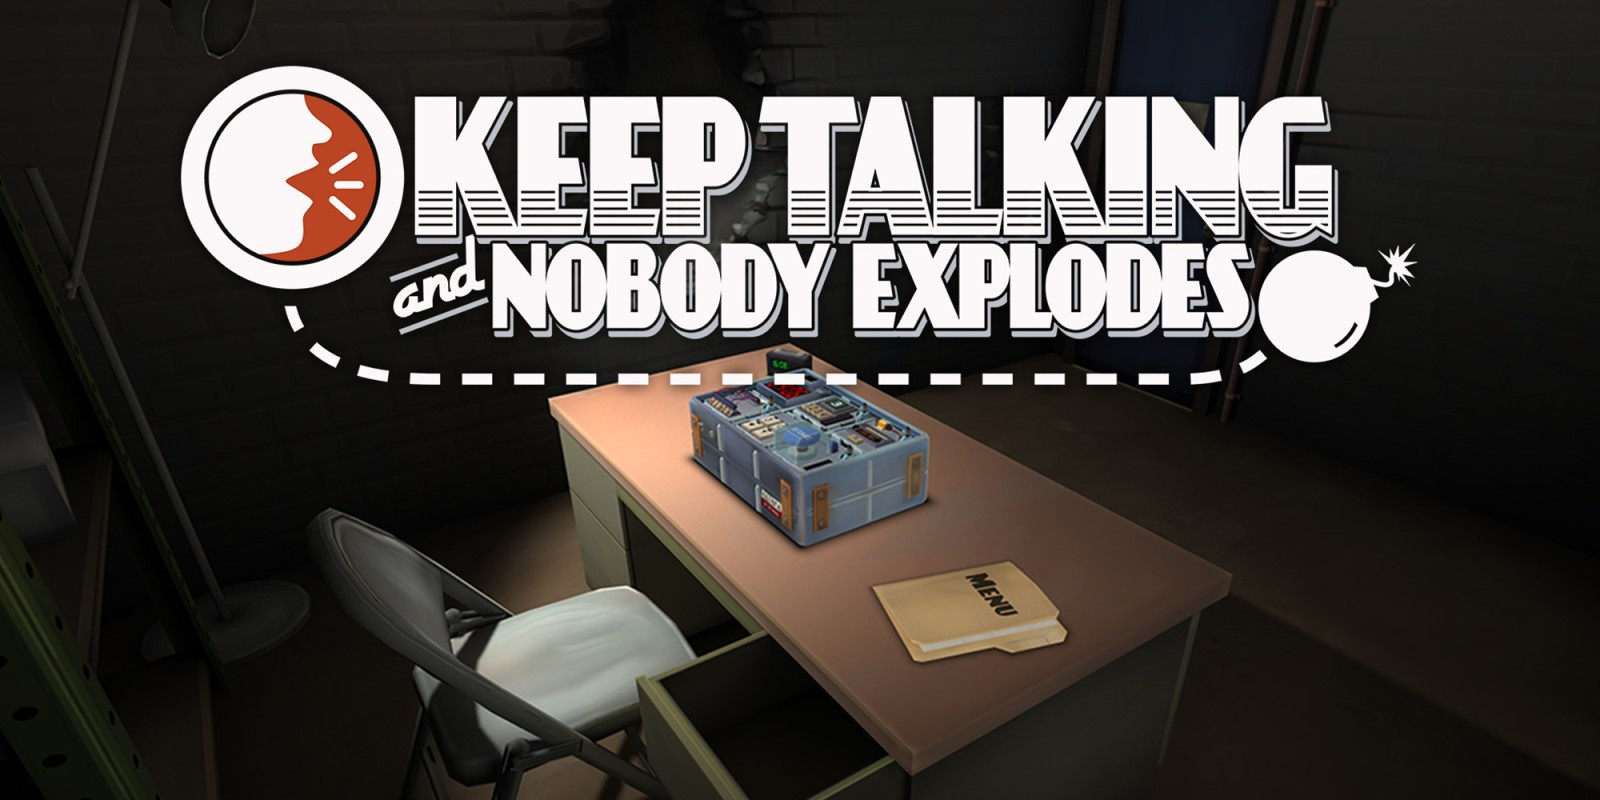 VR Event Booth Games: Keep Talking and Nobody Explodes Review